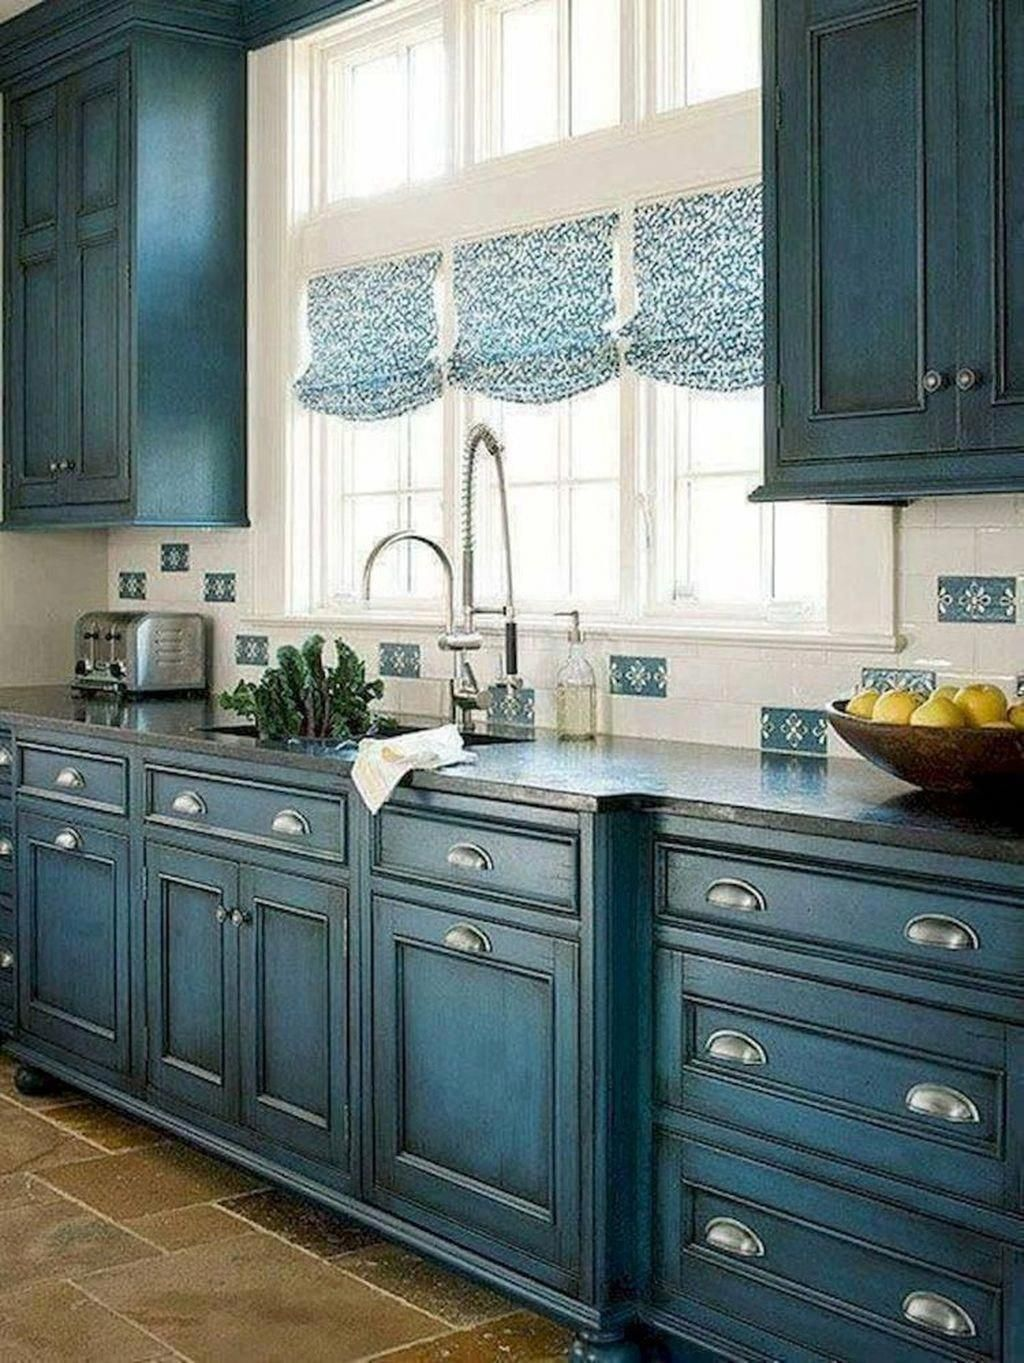 46 Amazing Painted Kitchen Cabinets Kitchencolors Paintingkitchencabinets New Kitchen Cabinets Budget Kitchen Remodel Kitchen Renovation